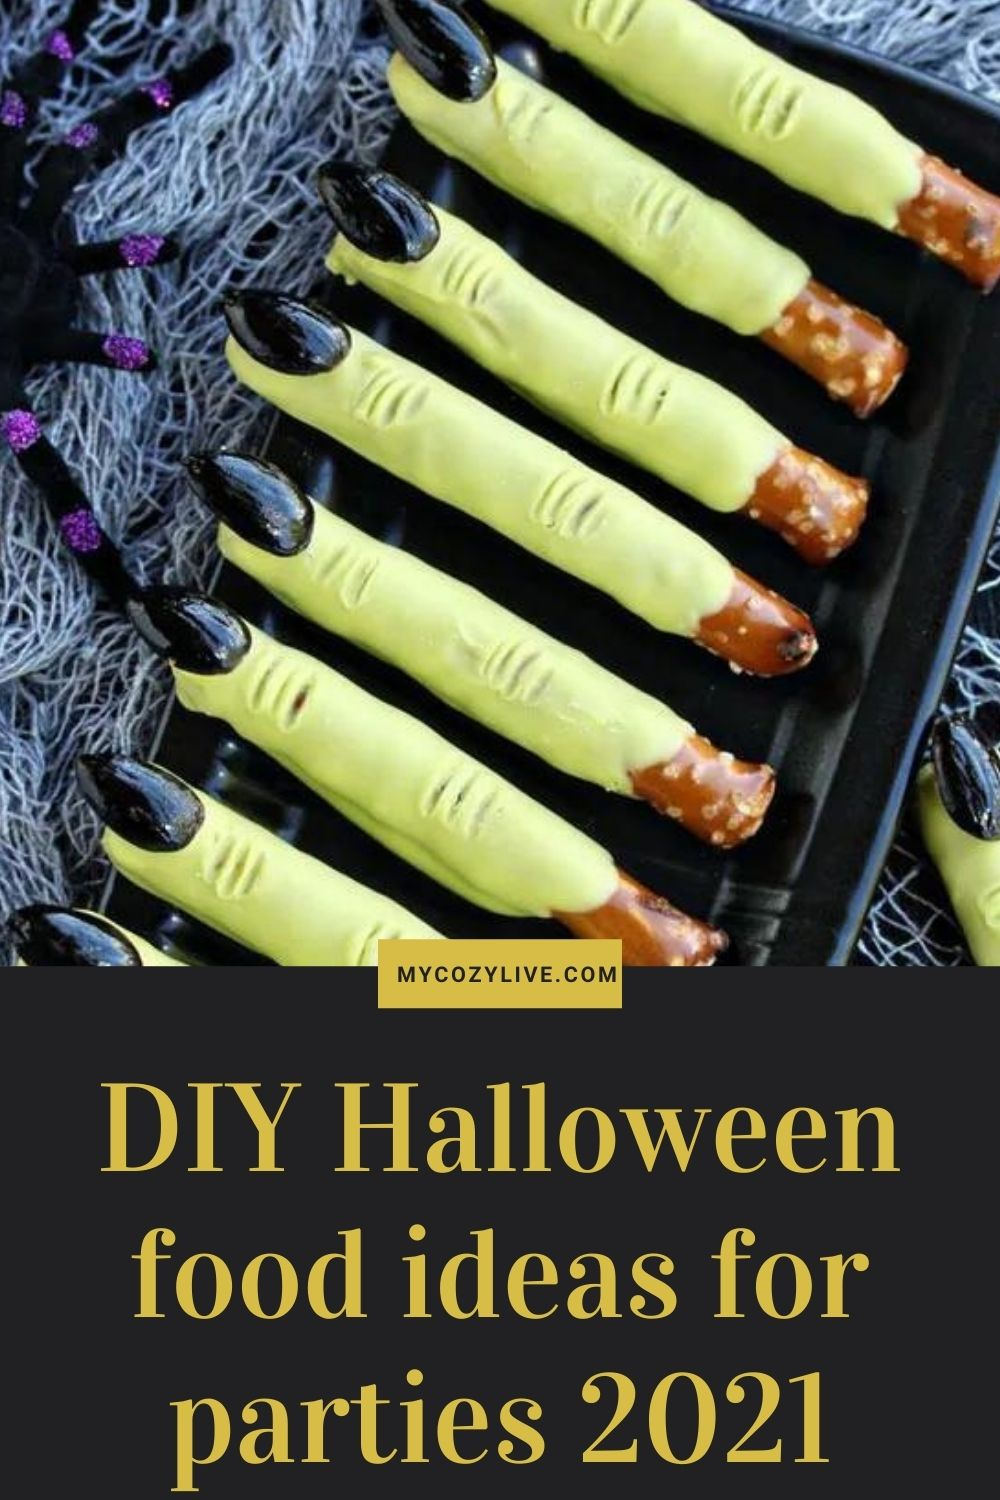 32 DIY Halloween food ideas for parties 2021 suitable for kids and adults